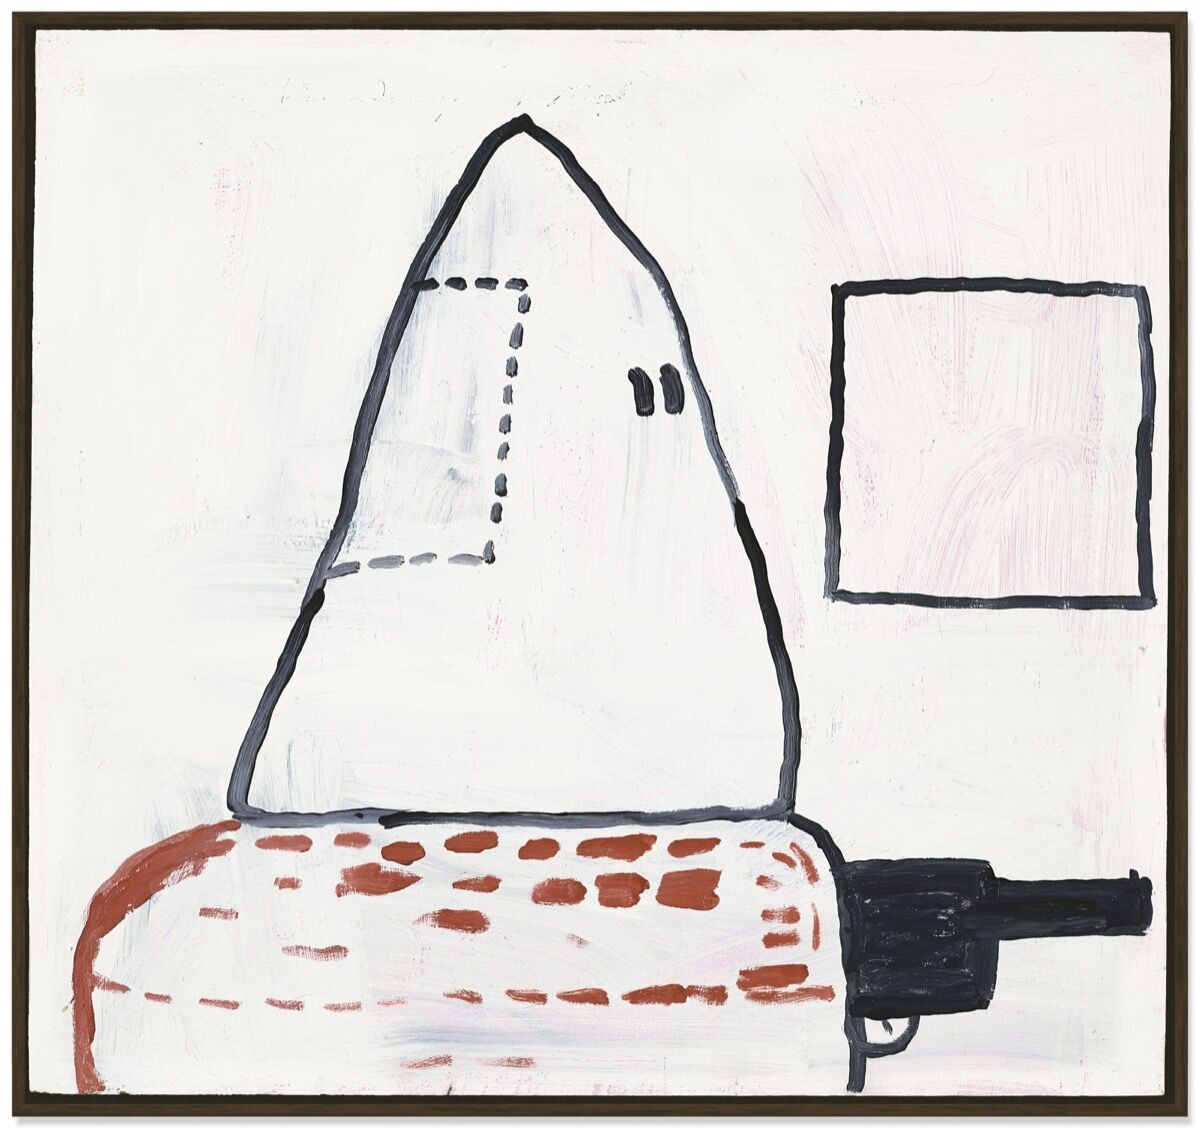 Philip Guston, Untitled, 1968. Courtesy of Christie's.